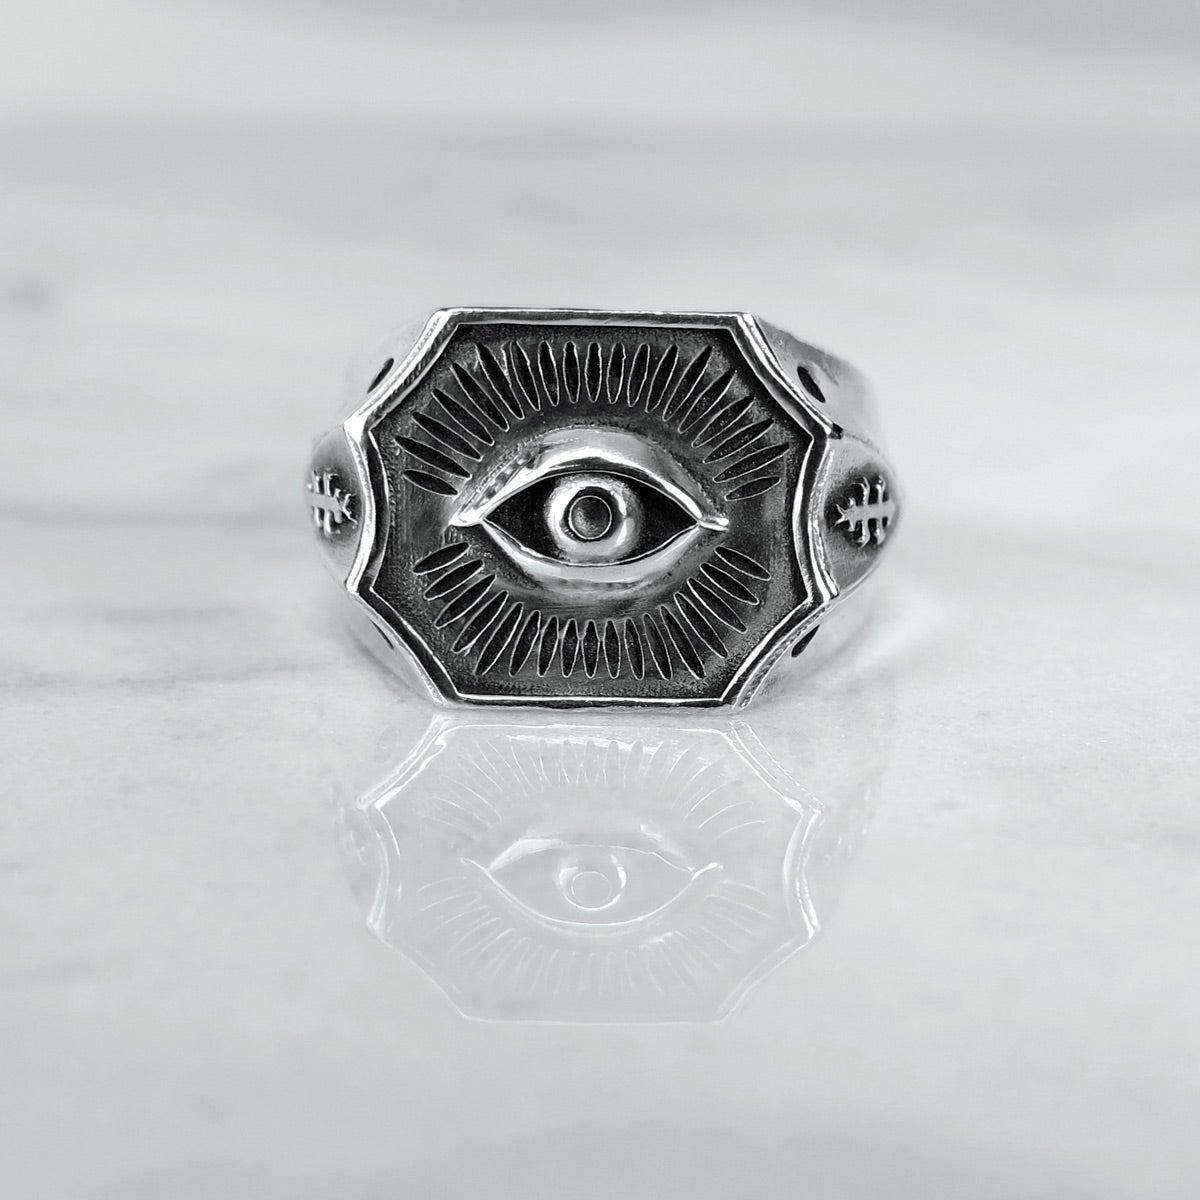 Image of All-Seeing Eye Signet Ring LG